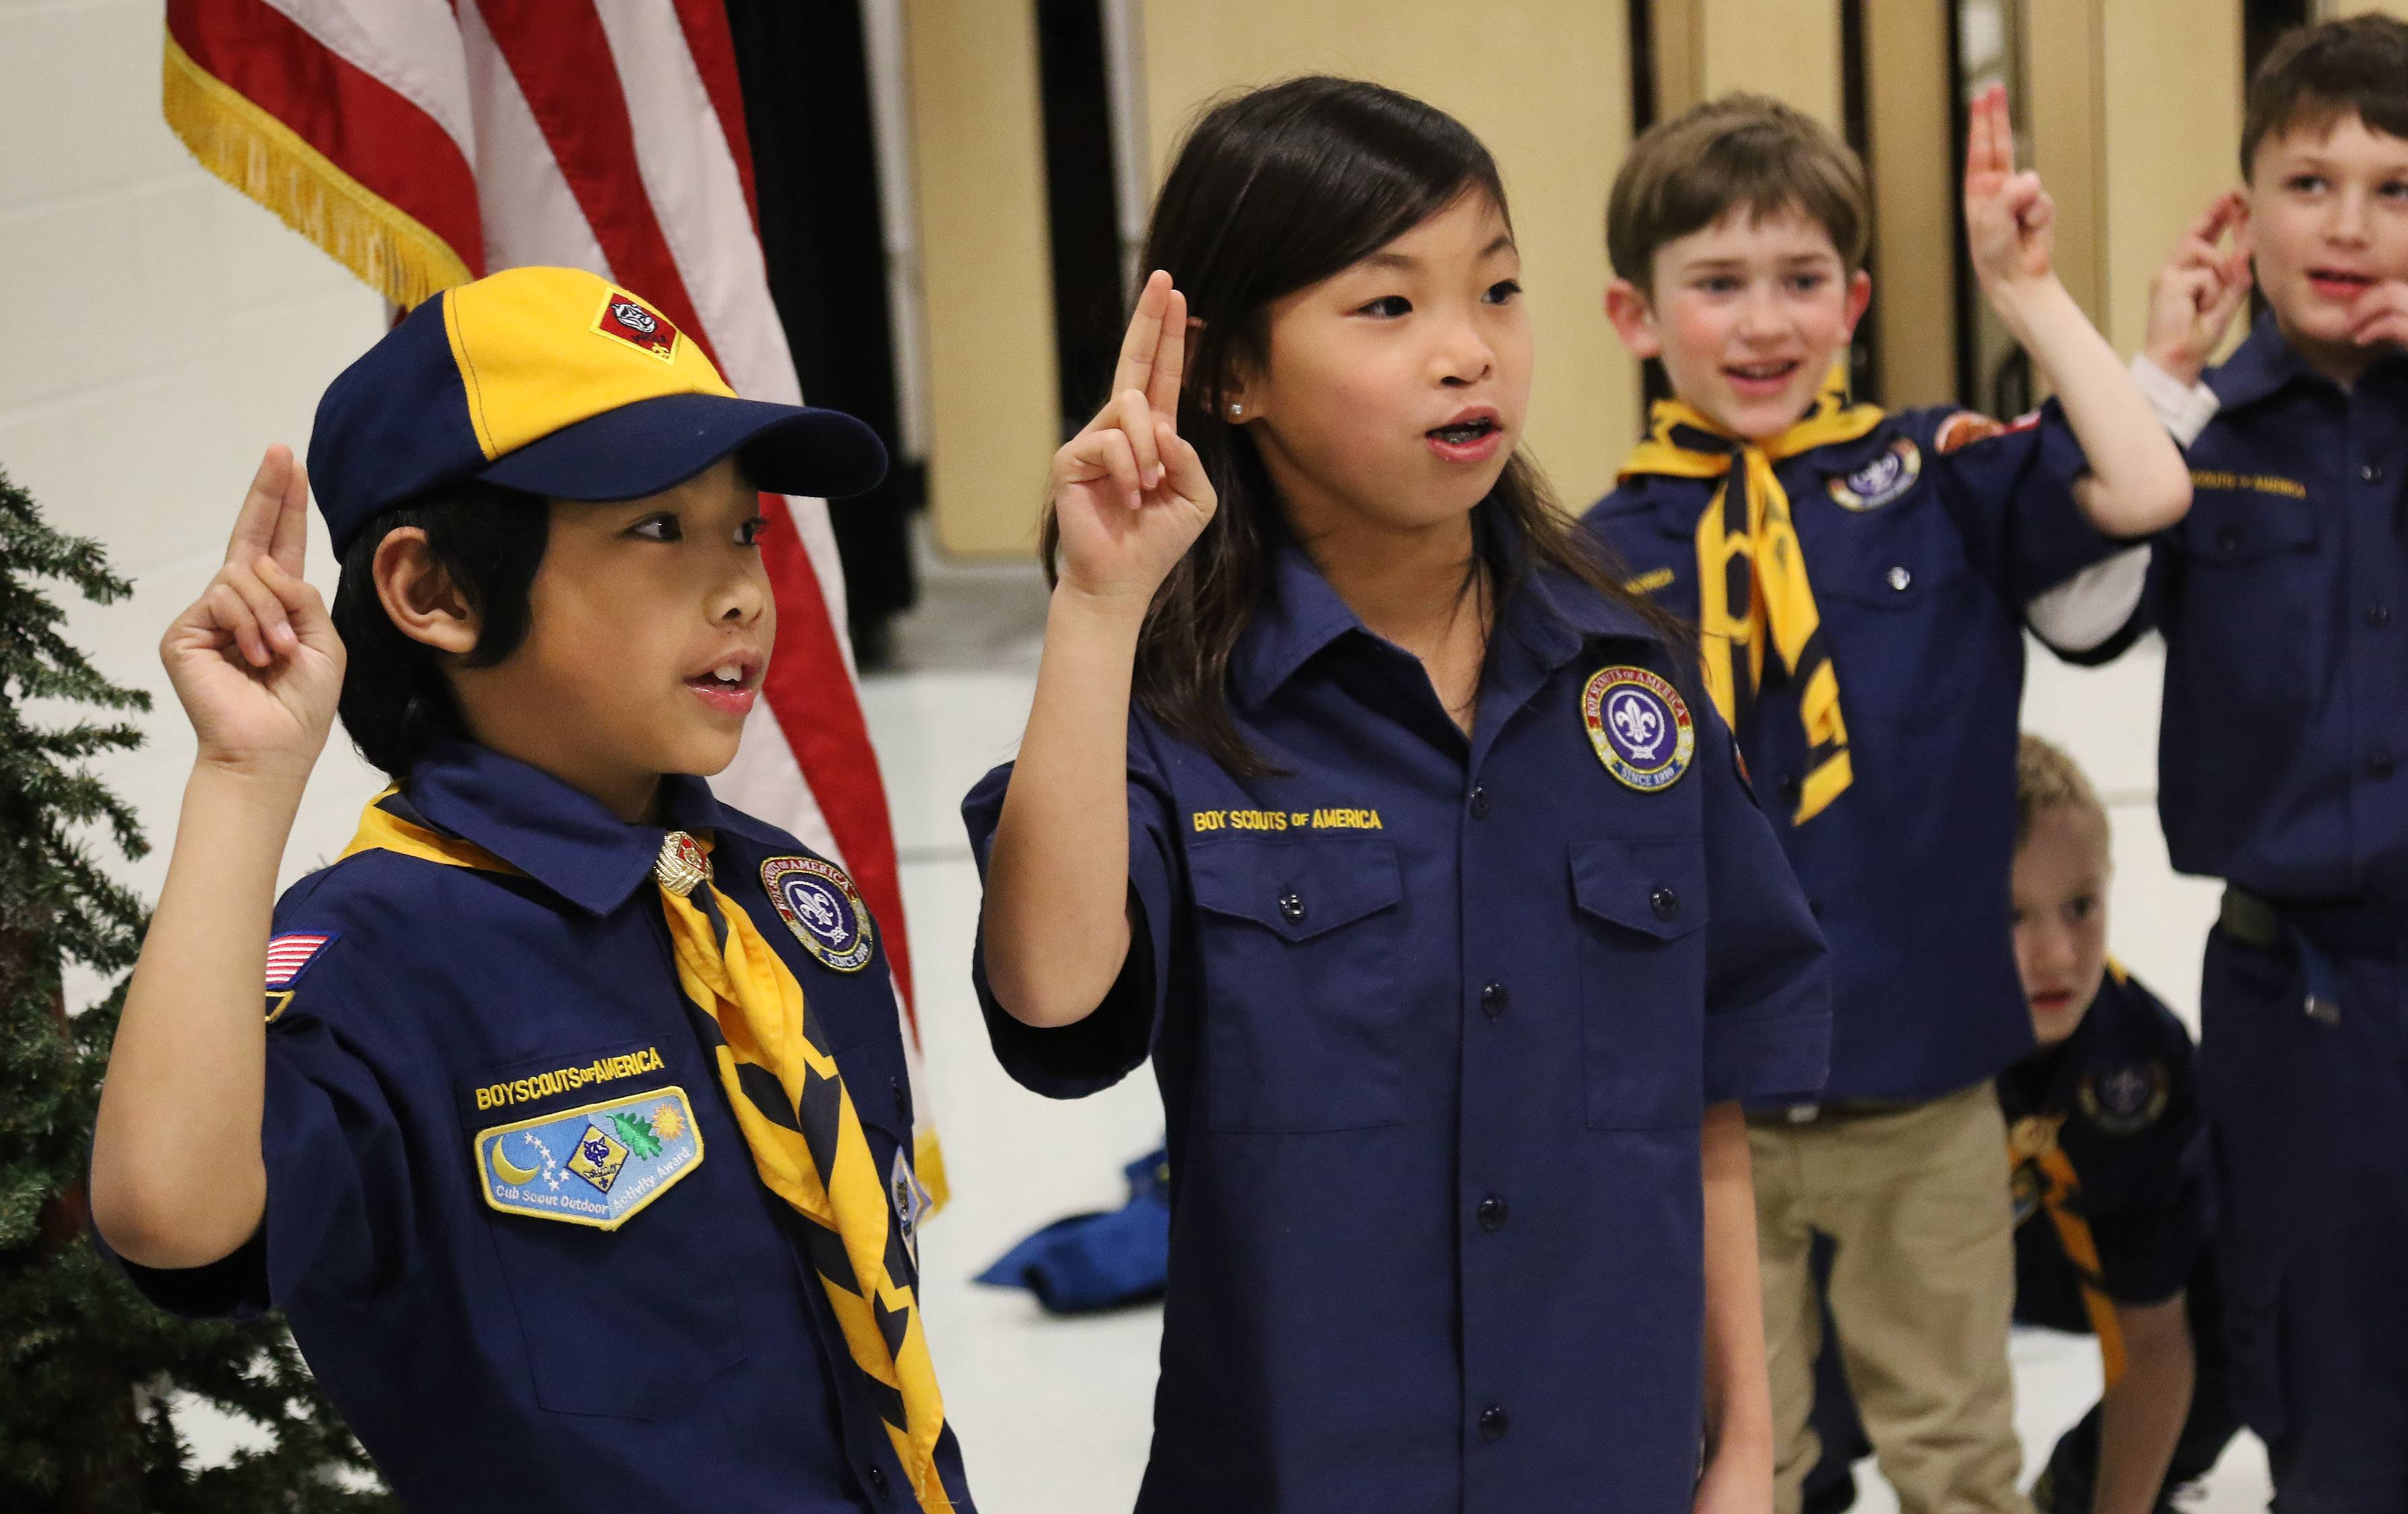 Cub Scout Matthew Kalt of Barrington Hills, left, and Lucy Vraniak of Tower Lakes recite the Scout Law during a meeting of Cub Scouts Pack 229 at North Barrington Elementary School.